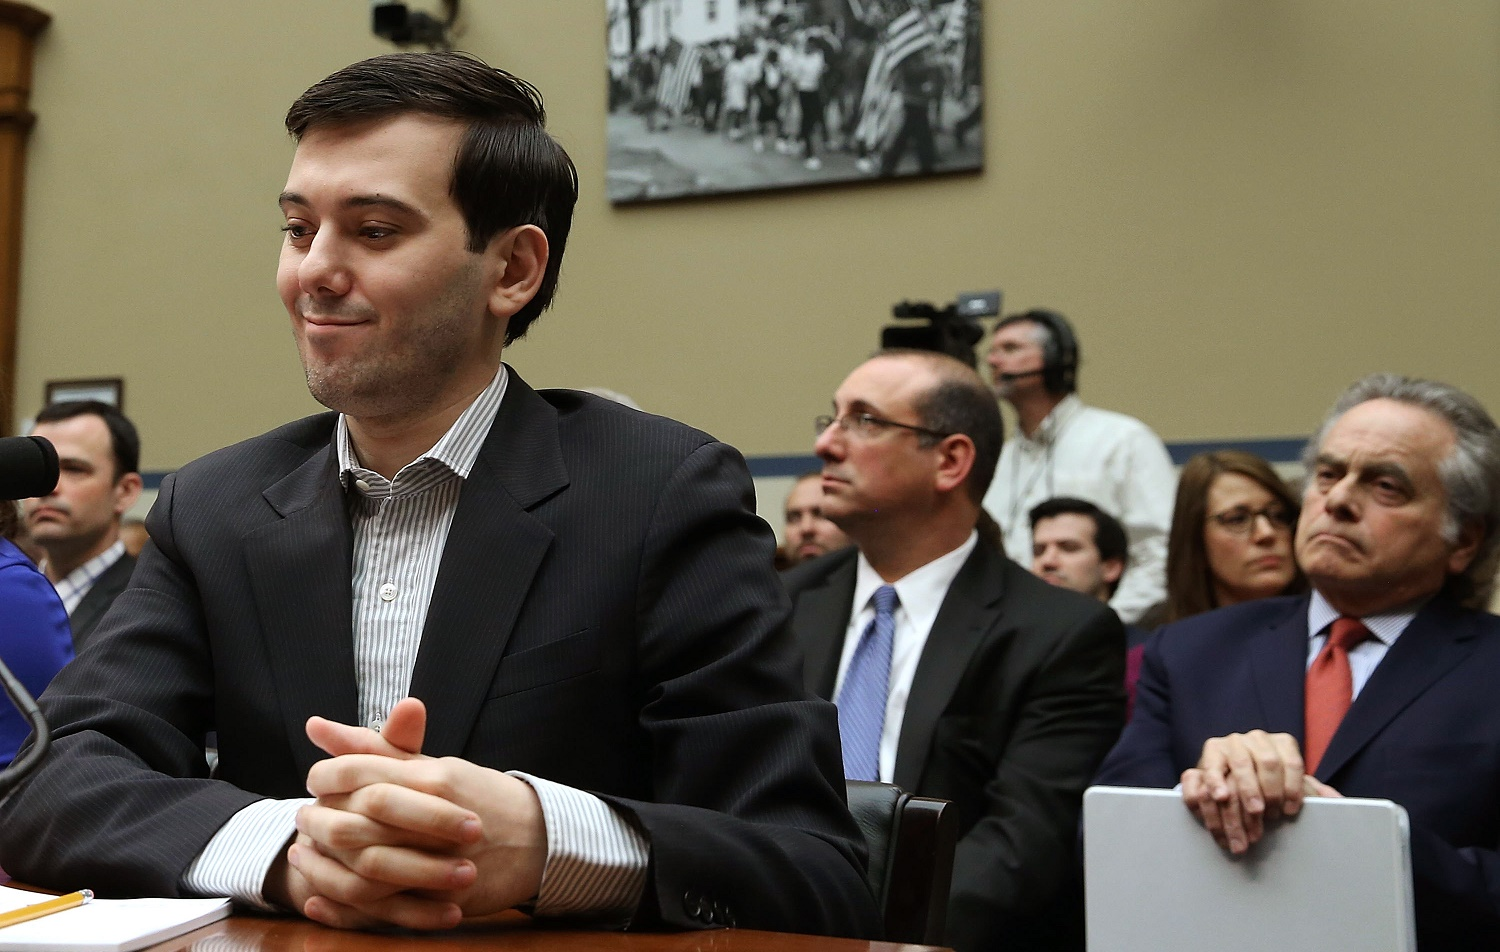 Martin Shkreli Ordered To Forfeit $7.36M In Assets, Including His Famous $2M Wu-Tang Album